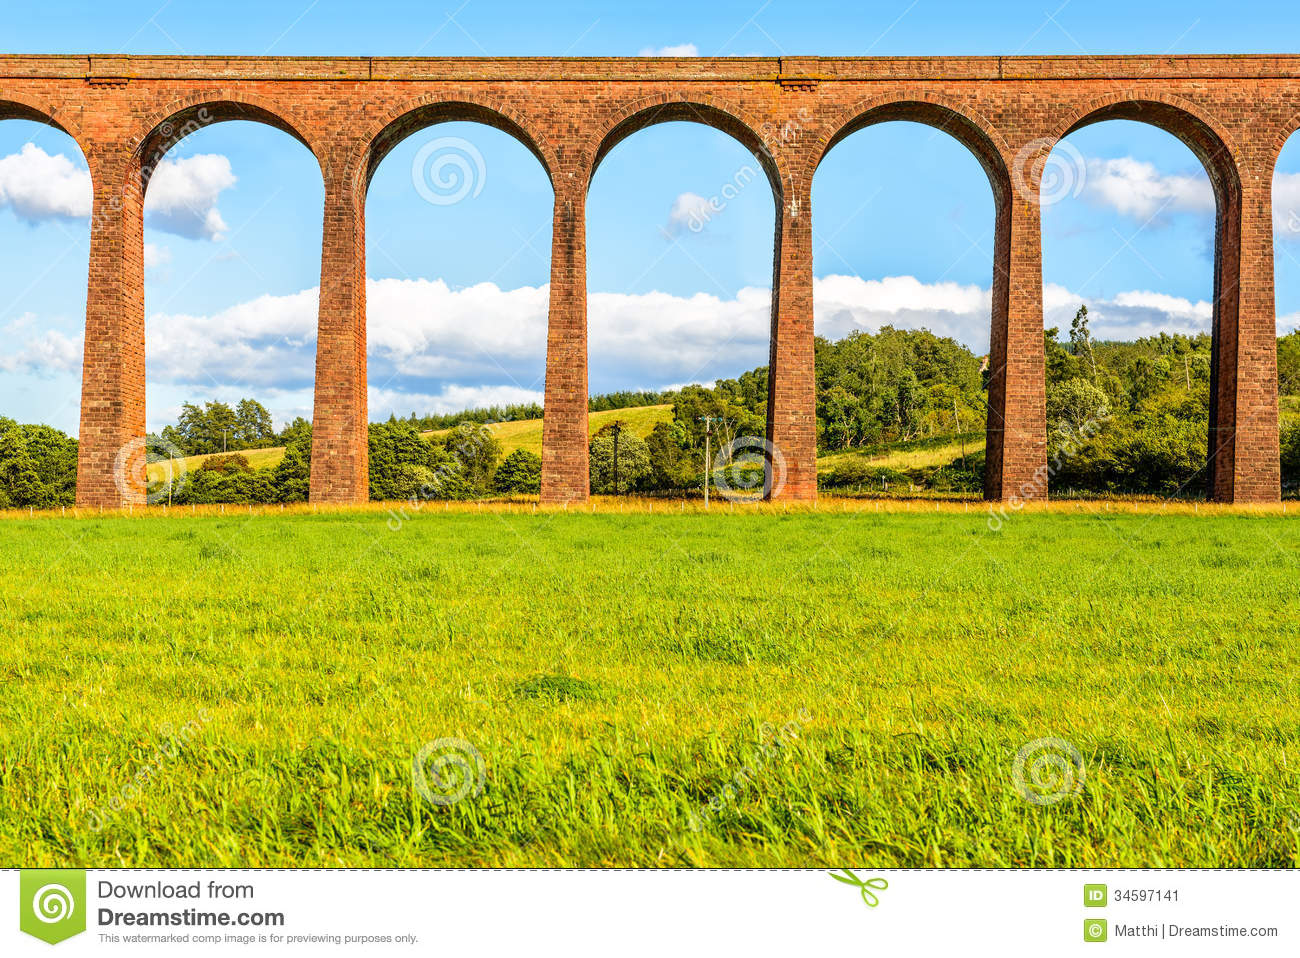 Culloden Viaduct, Scotland, UK Stock Image.